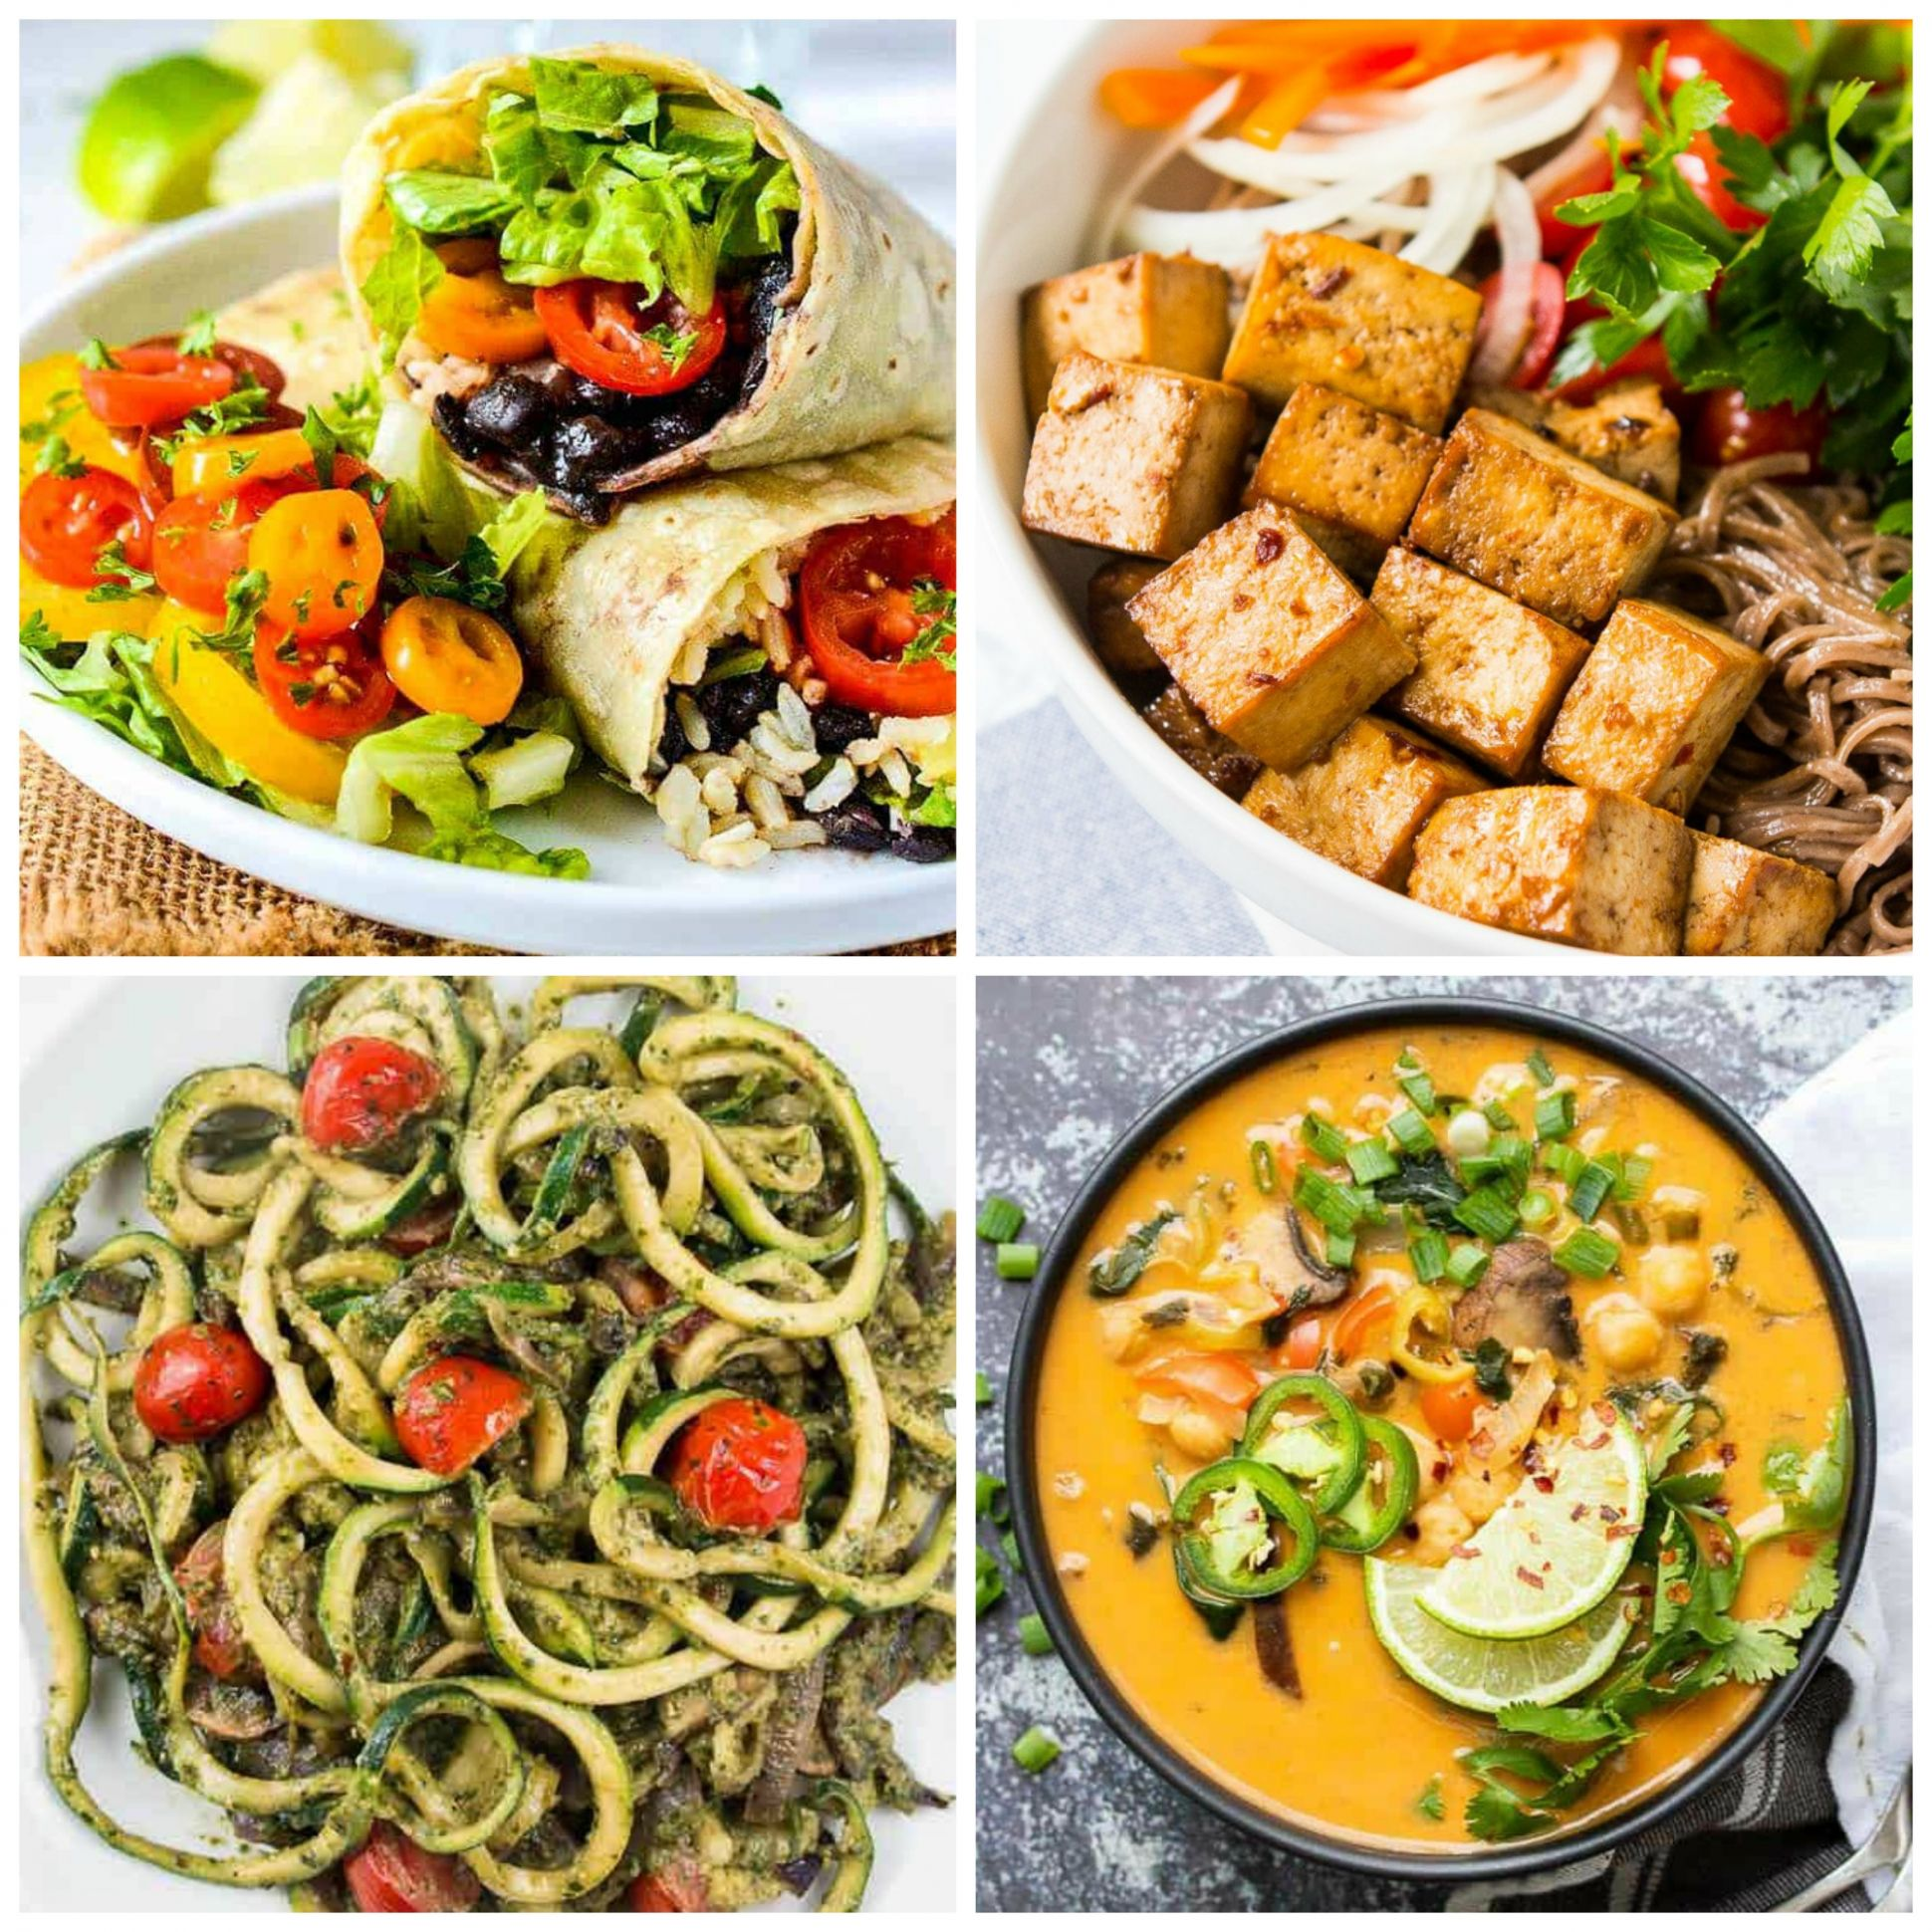 8 AMAZING Vegan Meals for Weight Loss (Gluten-Free & Low-Calorie) - Dinner Recipes For Weight Loss Vegetarian